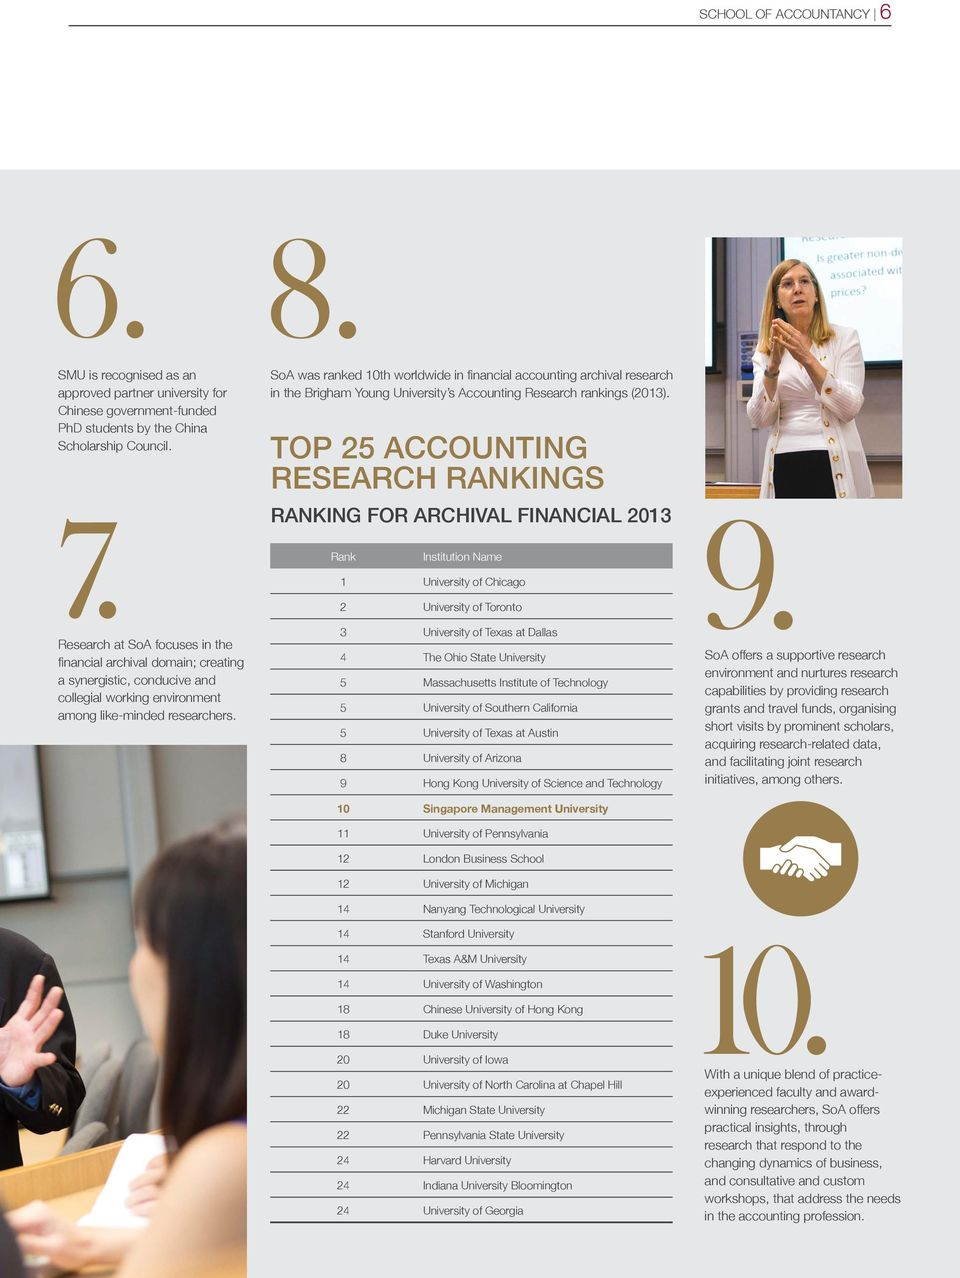 SoA was ranked 10th worldwide in financial accounting archival research in the Brigham Young University s Accounting Research rankings (2013).